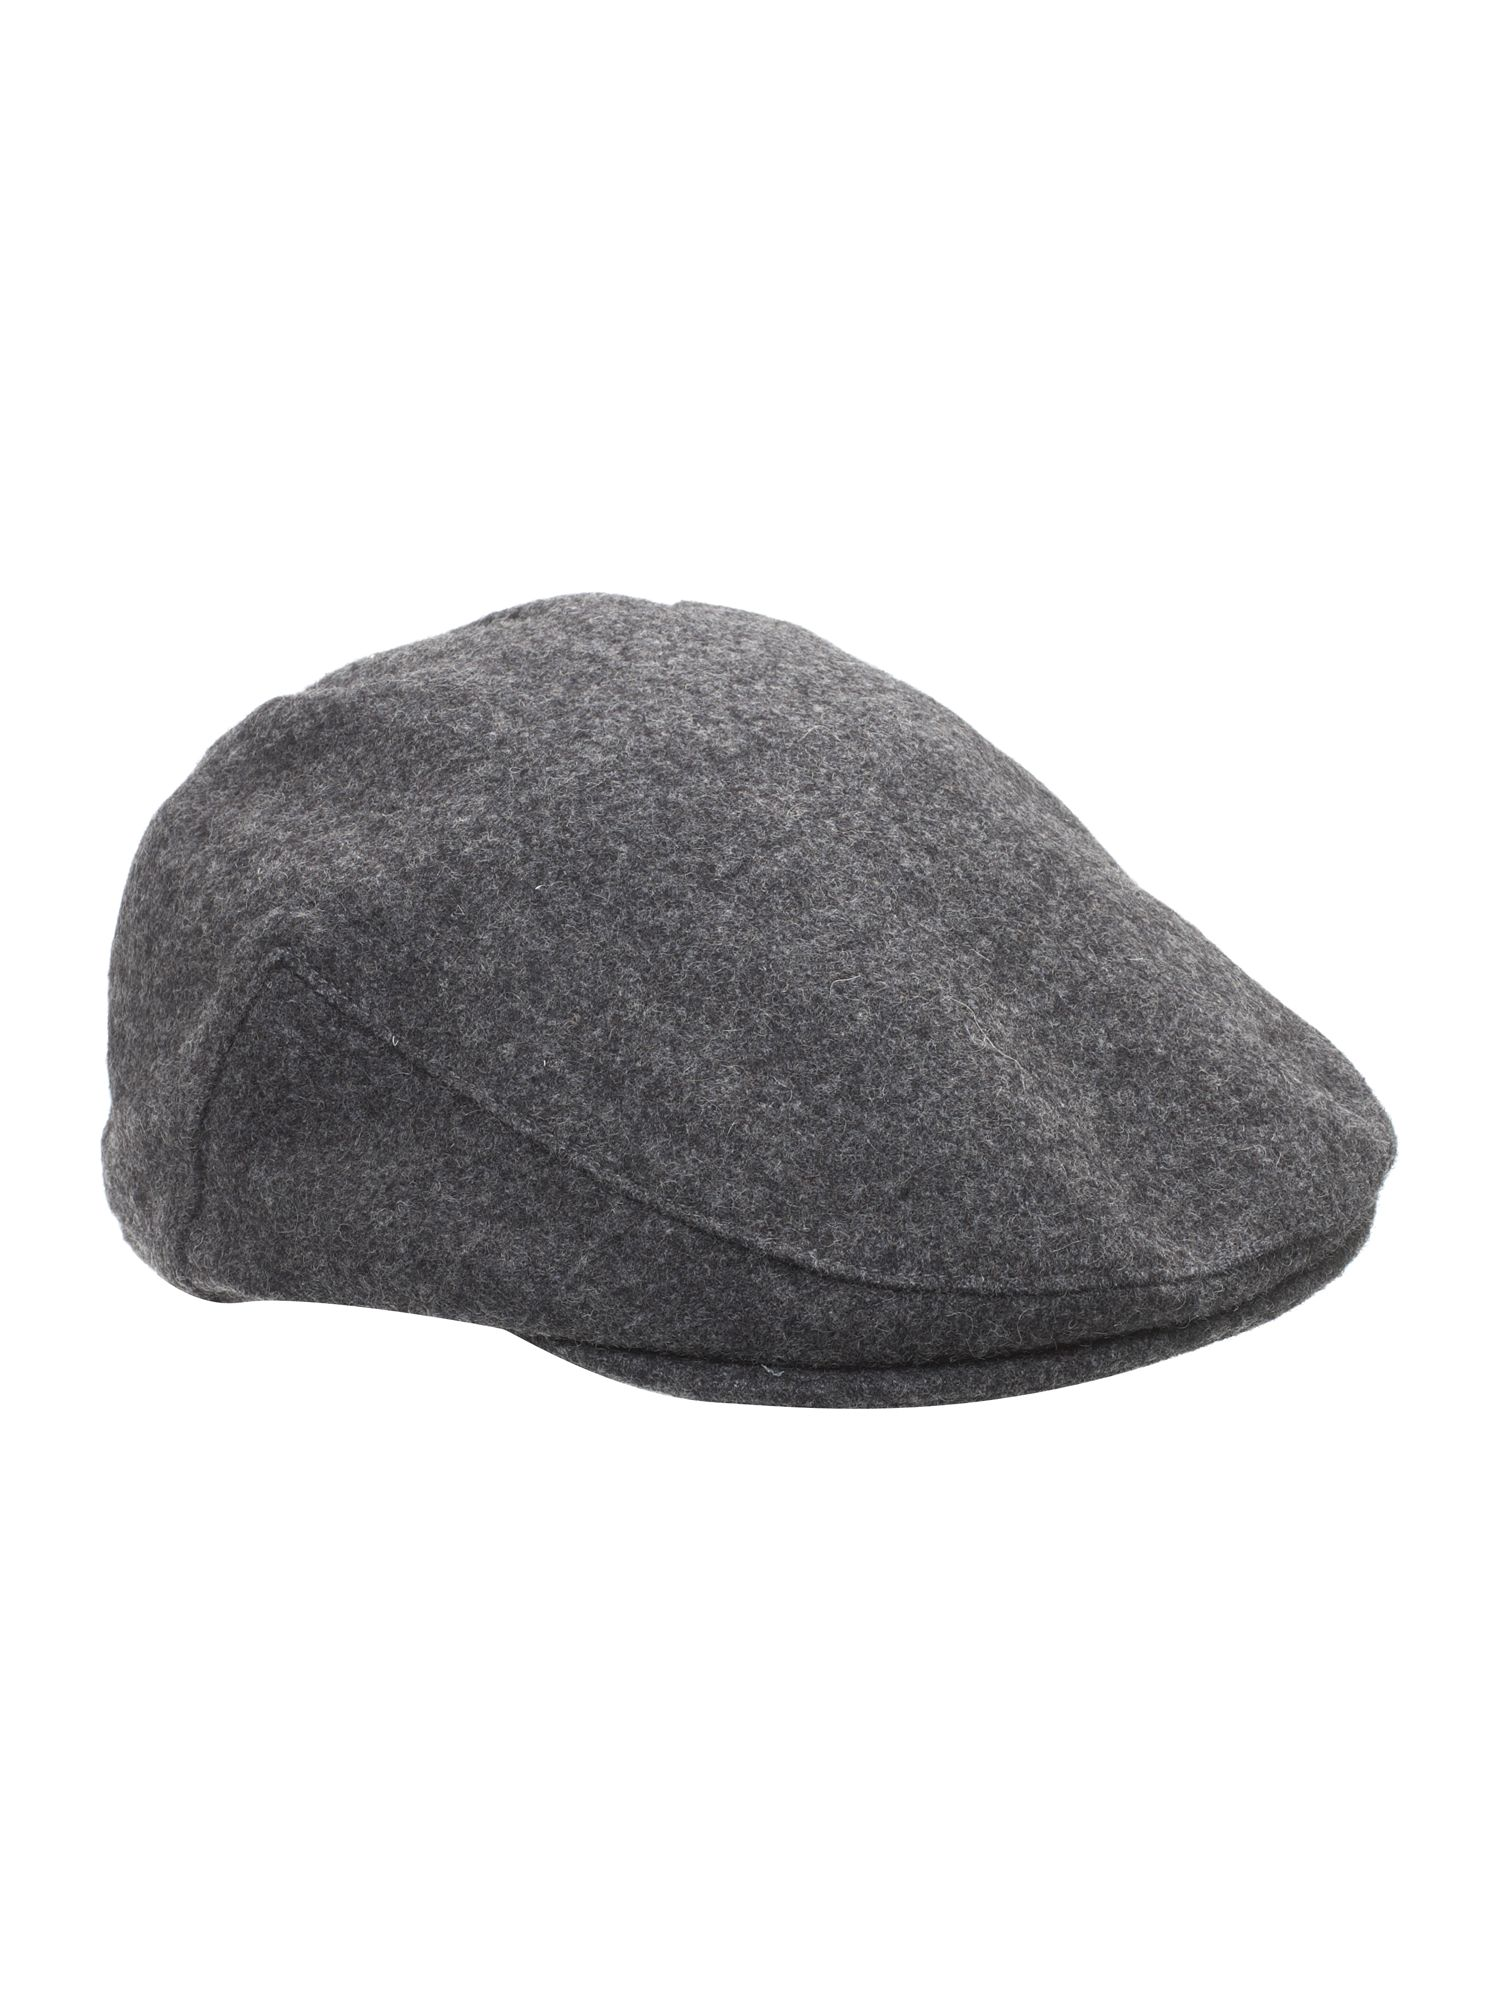 Van Heusen Men's Tonal Herringbone Ivy Flat Cap, 6 Panel Design This item: Van Heusen Men's Tonal Herringbone Ivy Flat Cap, 6 Panel Design, Grey, Medium/Large. Set up a giveaway. Customers who bought this item also bought. Page 1 of 1 Start over Page 1 of 1.